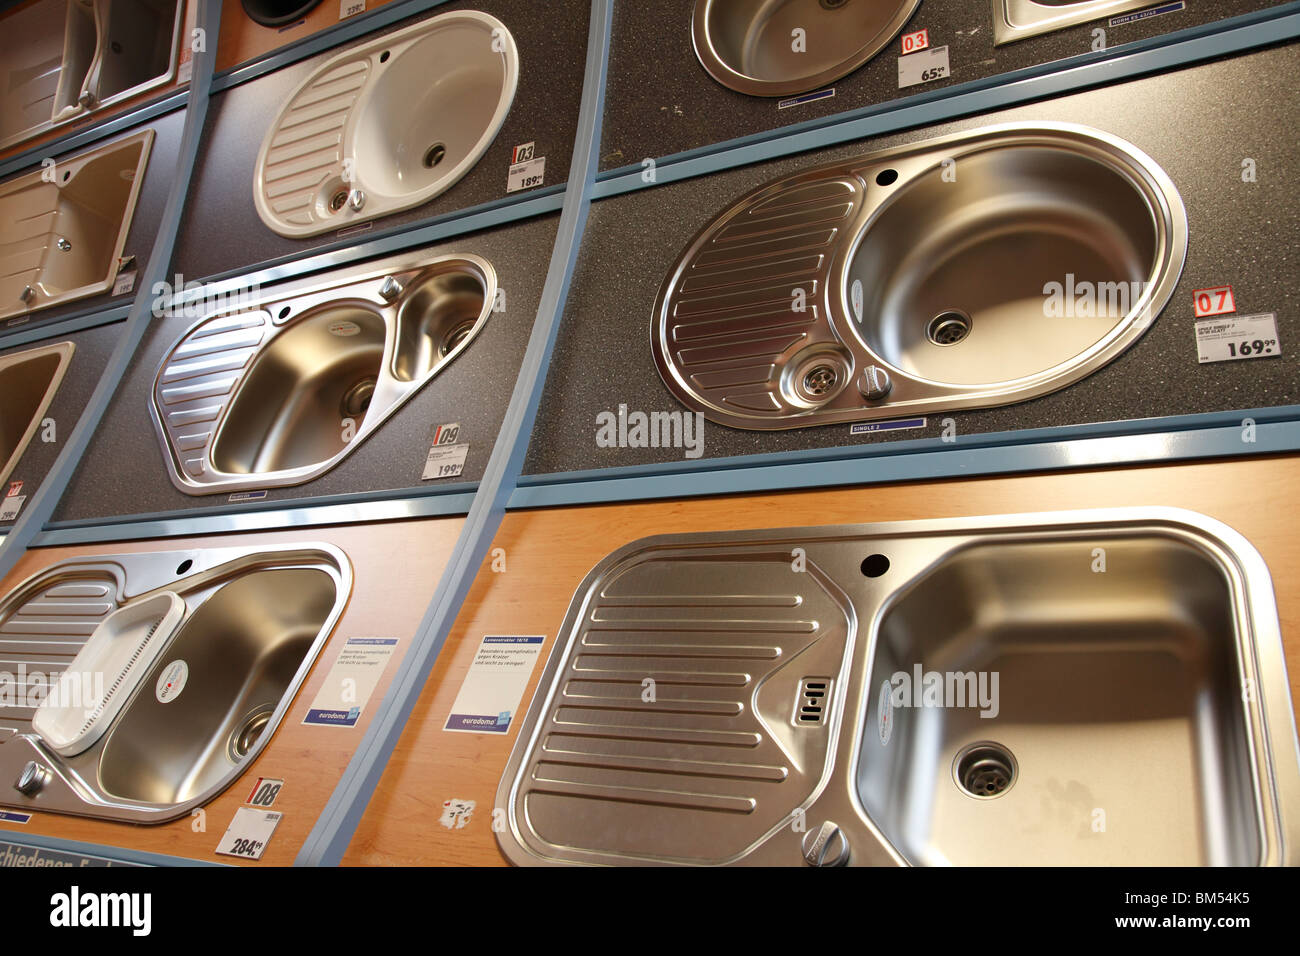 double bowl sinks in a DIY store - Stock Image